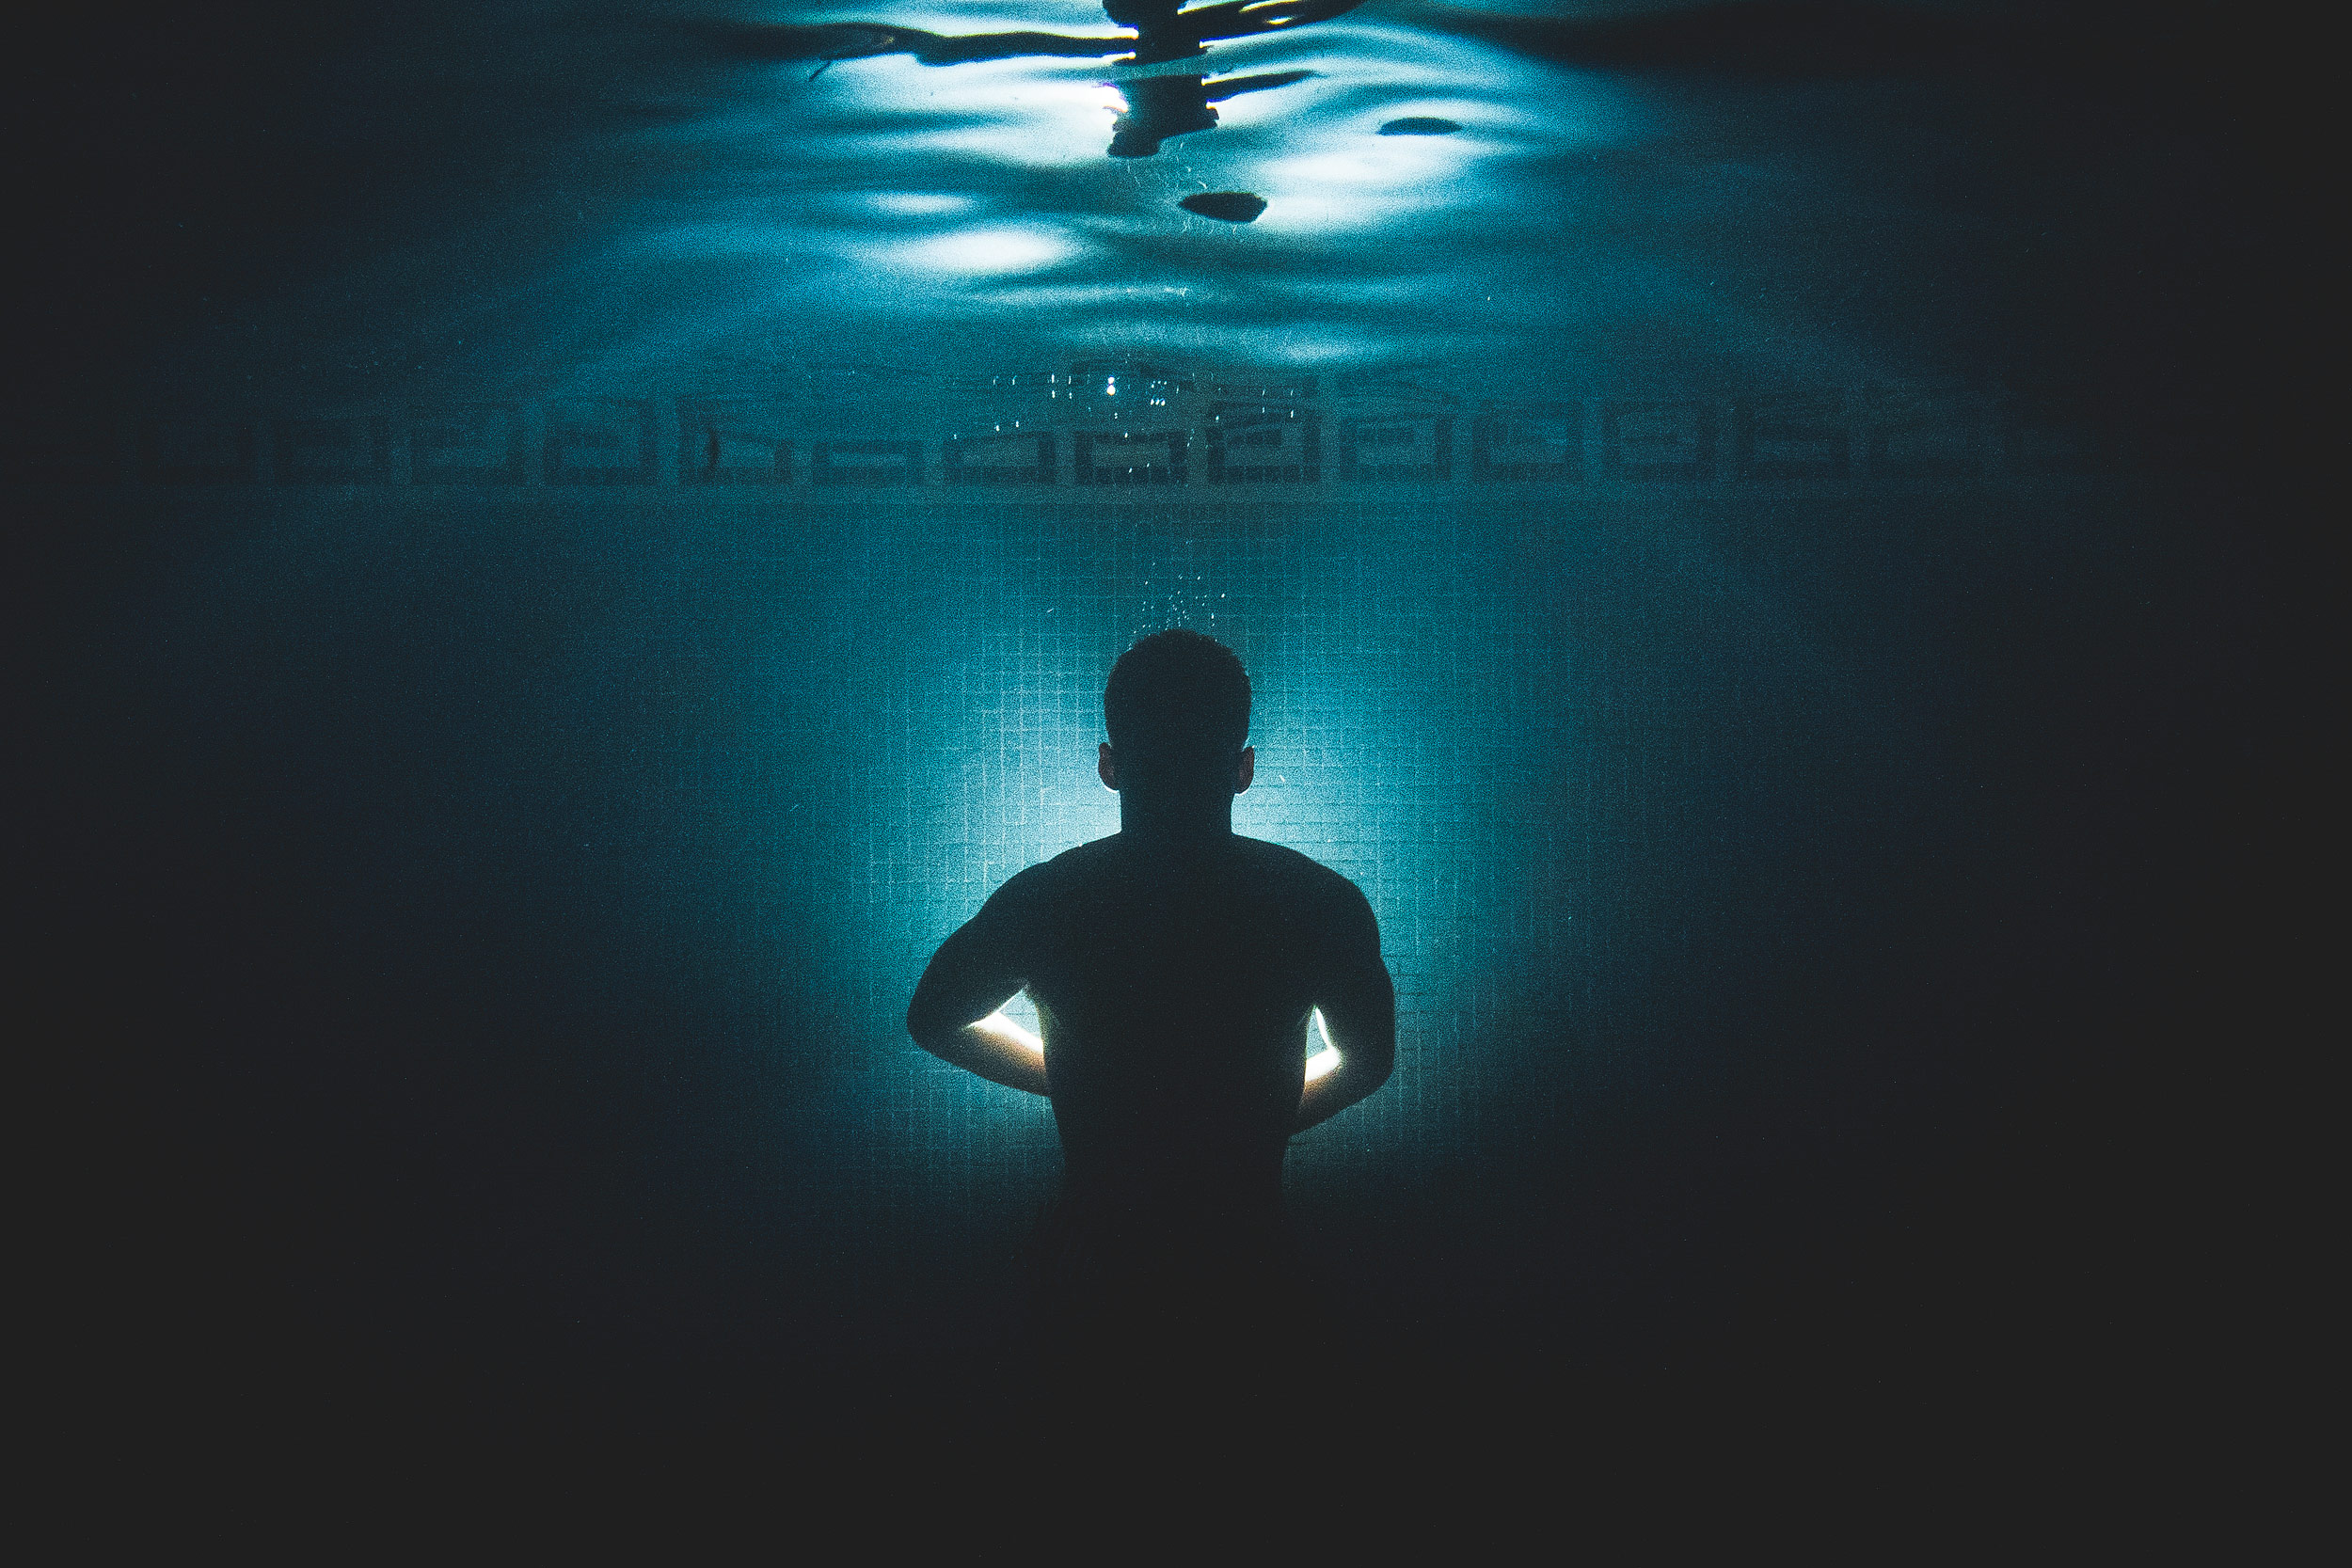 Jamie-UNderwater-copy.jpg